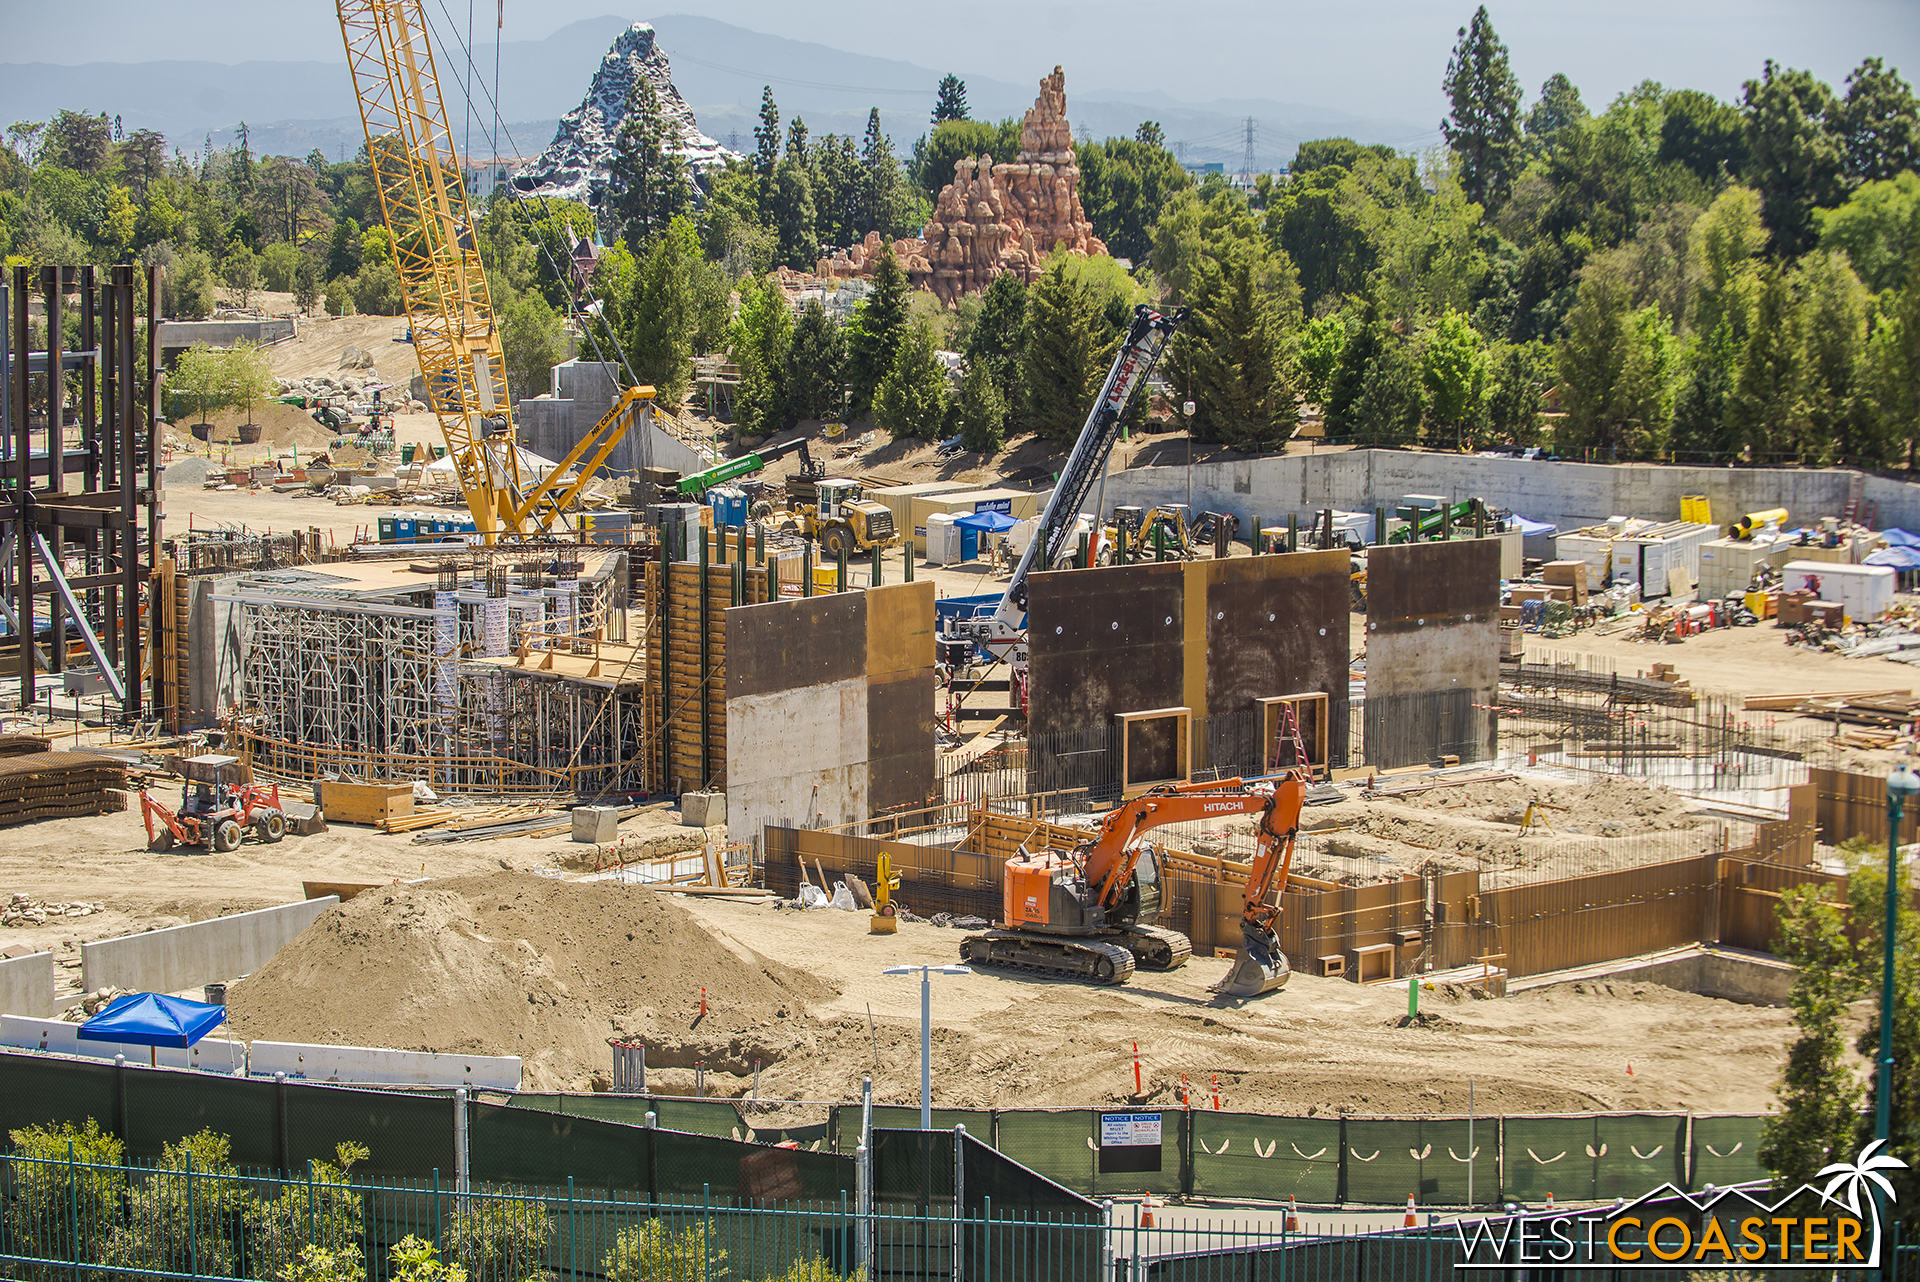 And though it's tough to identify scale on a photo taken from so far away, let me assure you that the formwork for those concrete walls is pretty damn tall.